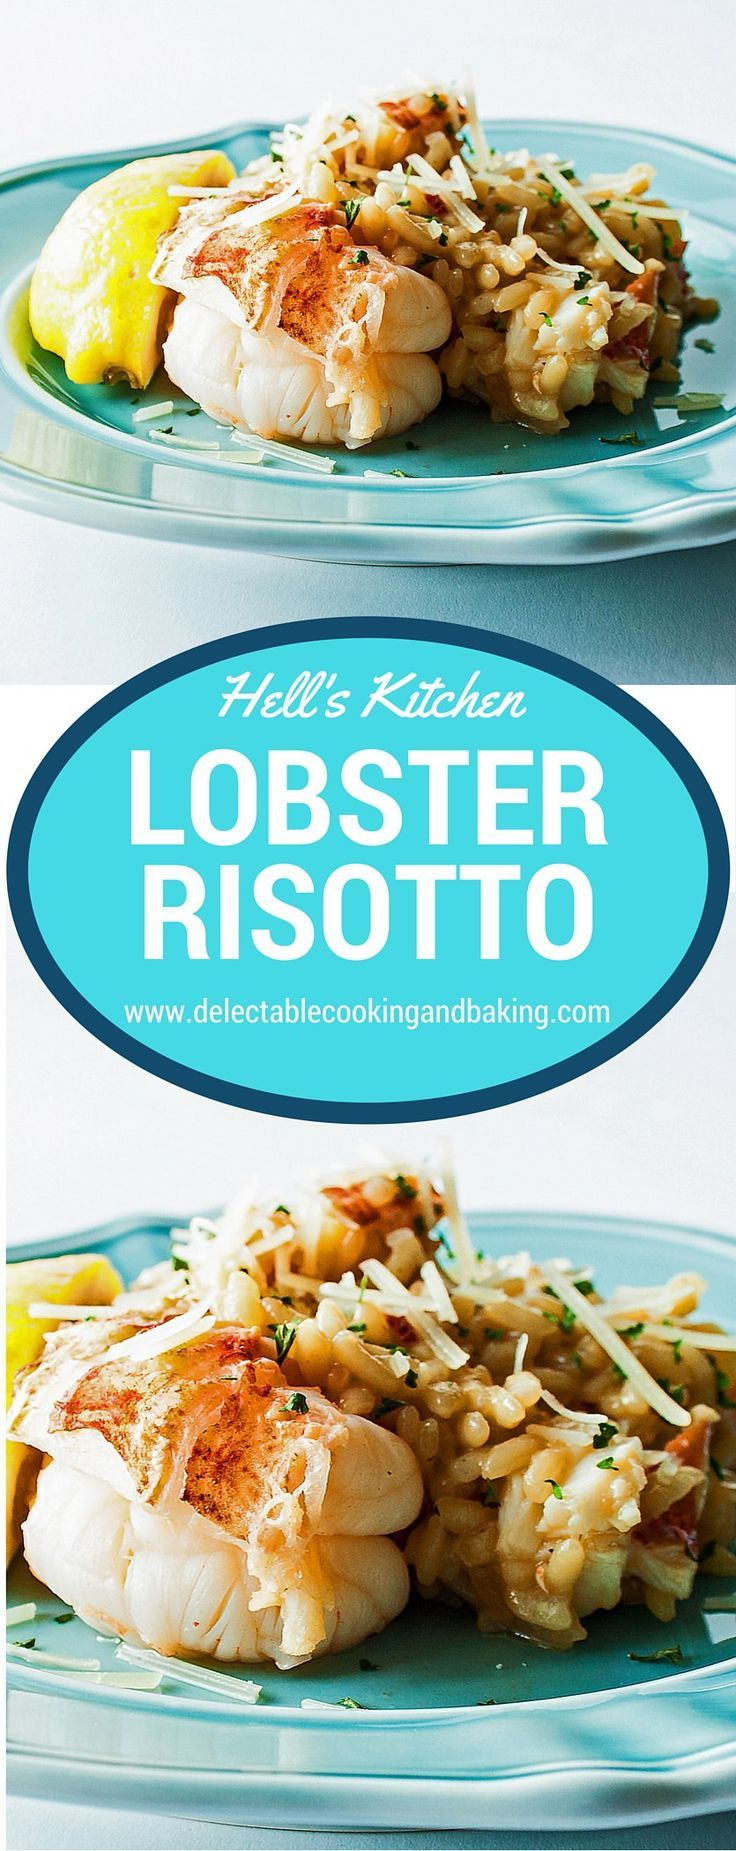 We tend to binge watch Gordon Ramsey shows and since Hell's Kitchen frequently features Lobster Risotto, we have always loved the look (and tantalizing taste!) of Gordon Ramsey Hell's Kitchen Lobster Risotto Recipe. DelectableCooking...   #lobsterrisotto #GordonRamsey #HellsKitchen #lobster #risotto #creamyrisotto